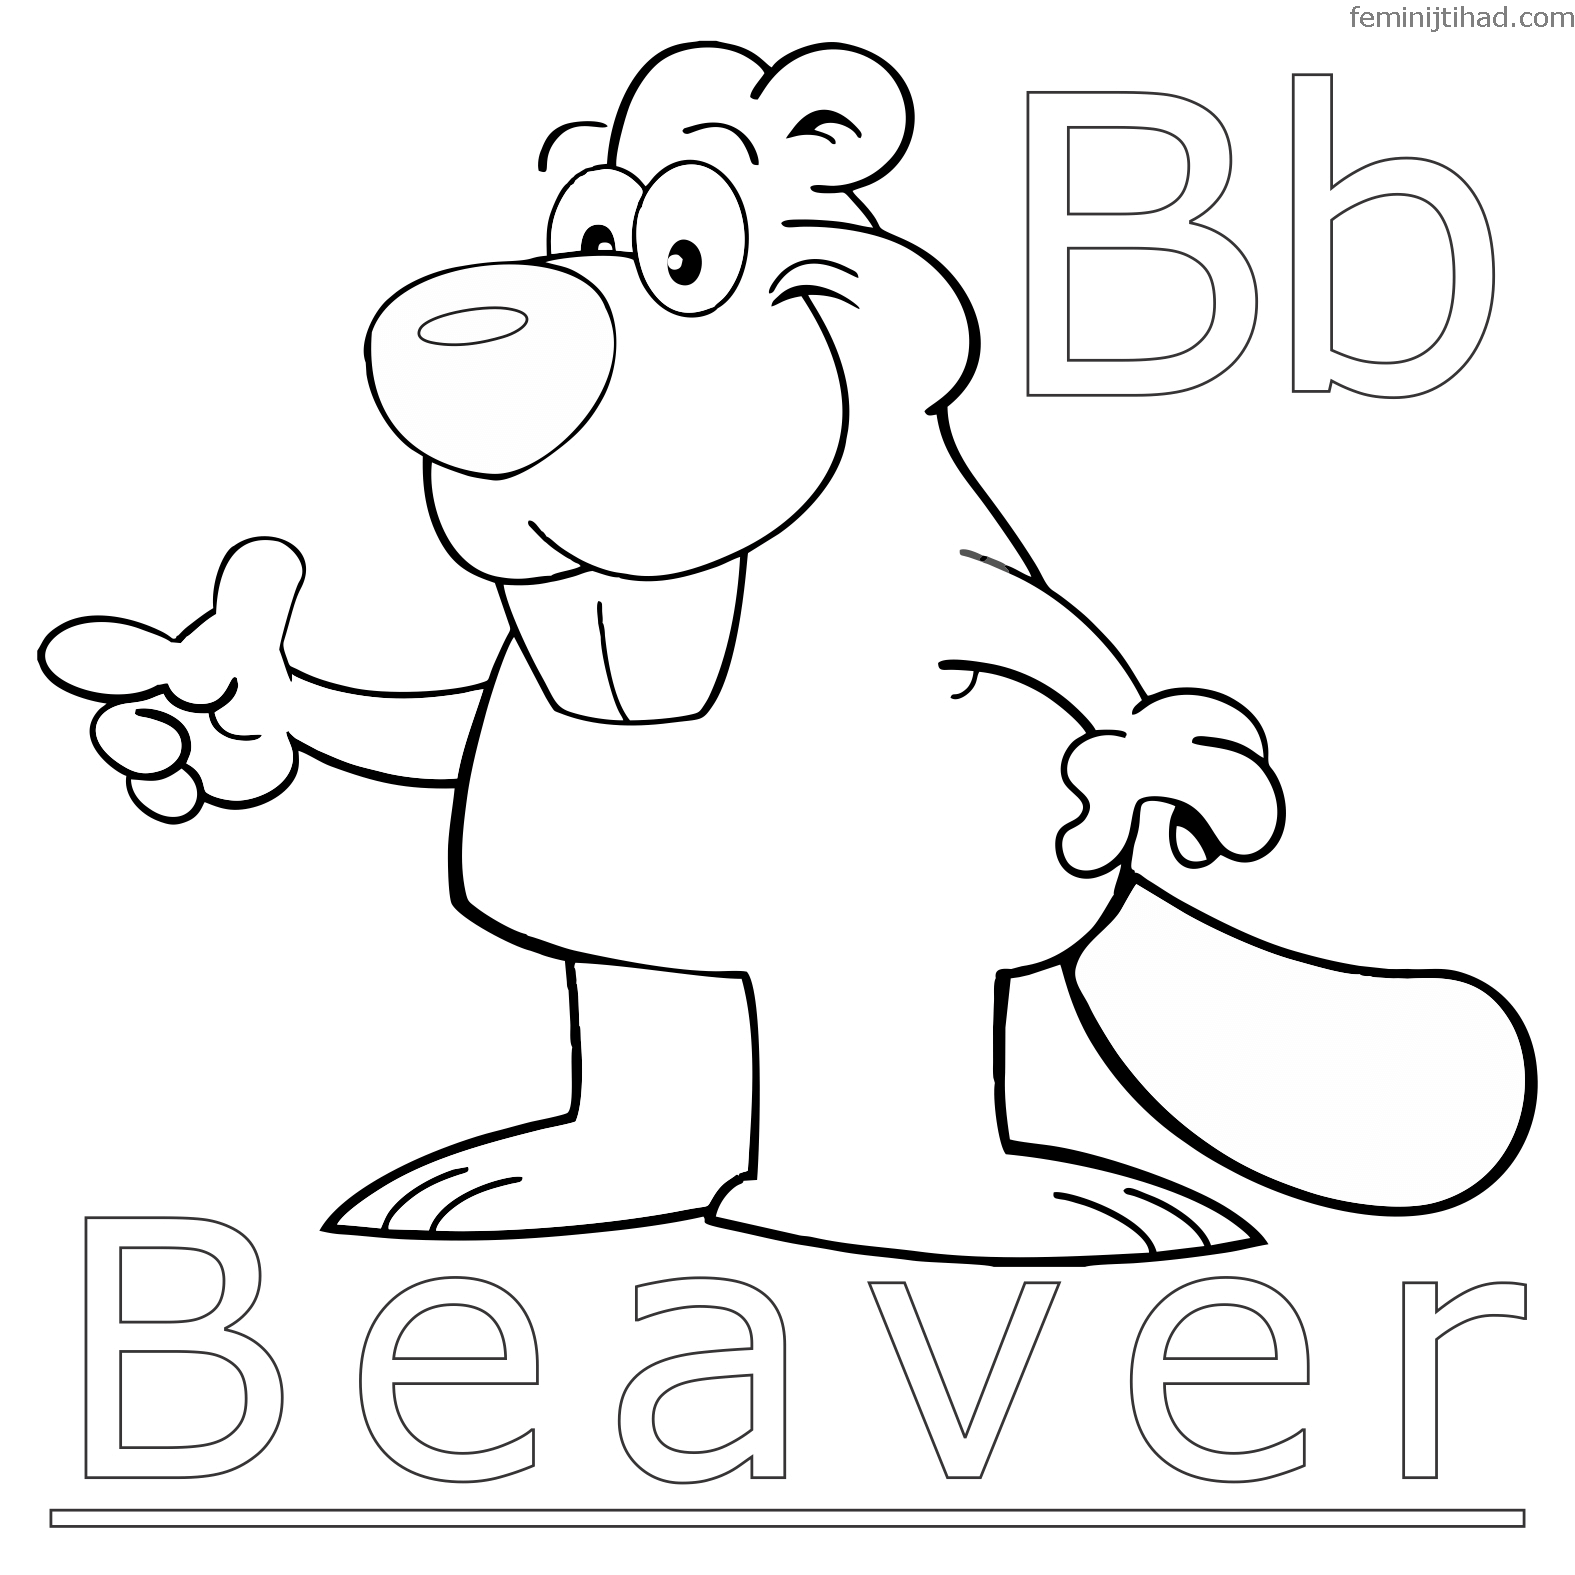 1575x1575 Beaver Coloring Pages To Print For Free Coloring Pages For Kids